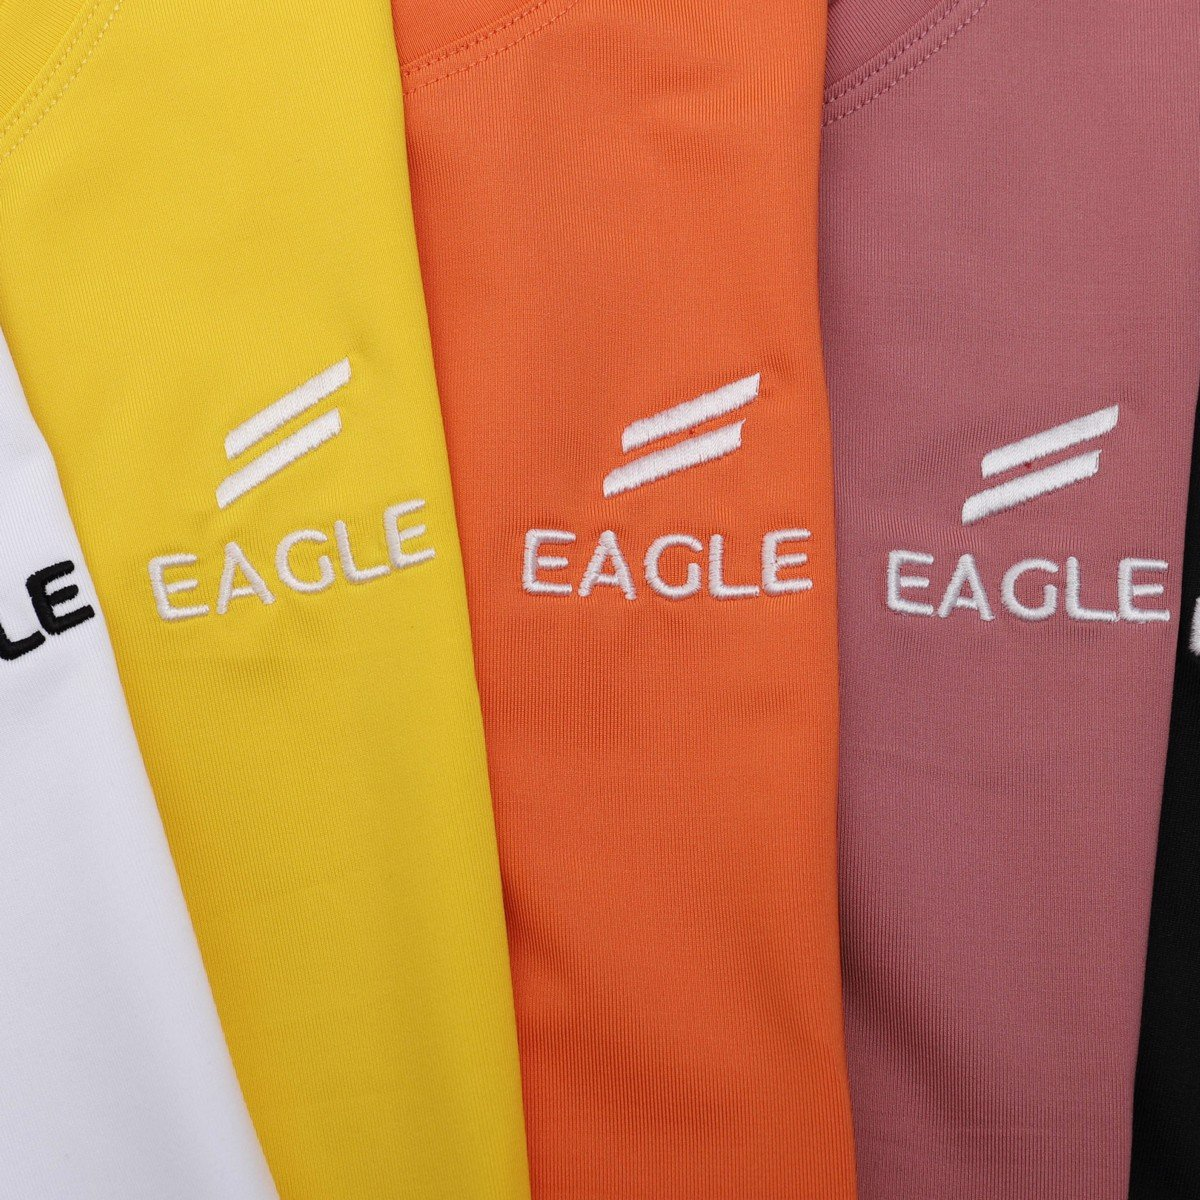 Áo crop top Eagle logo thêu